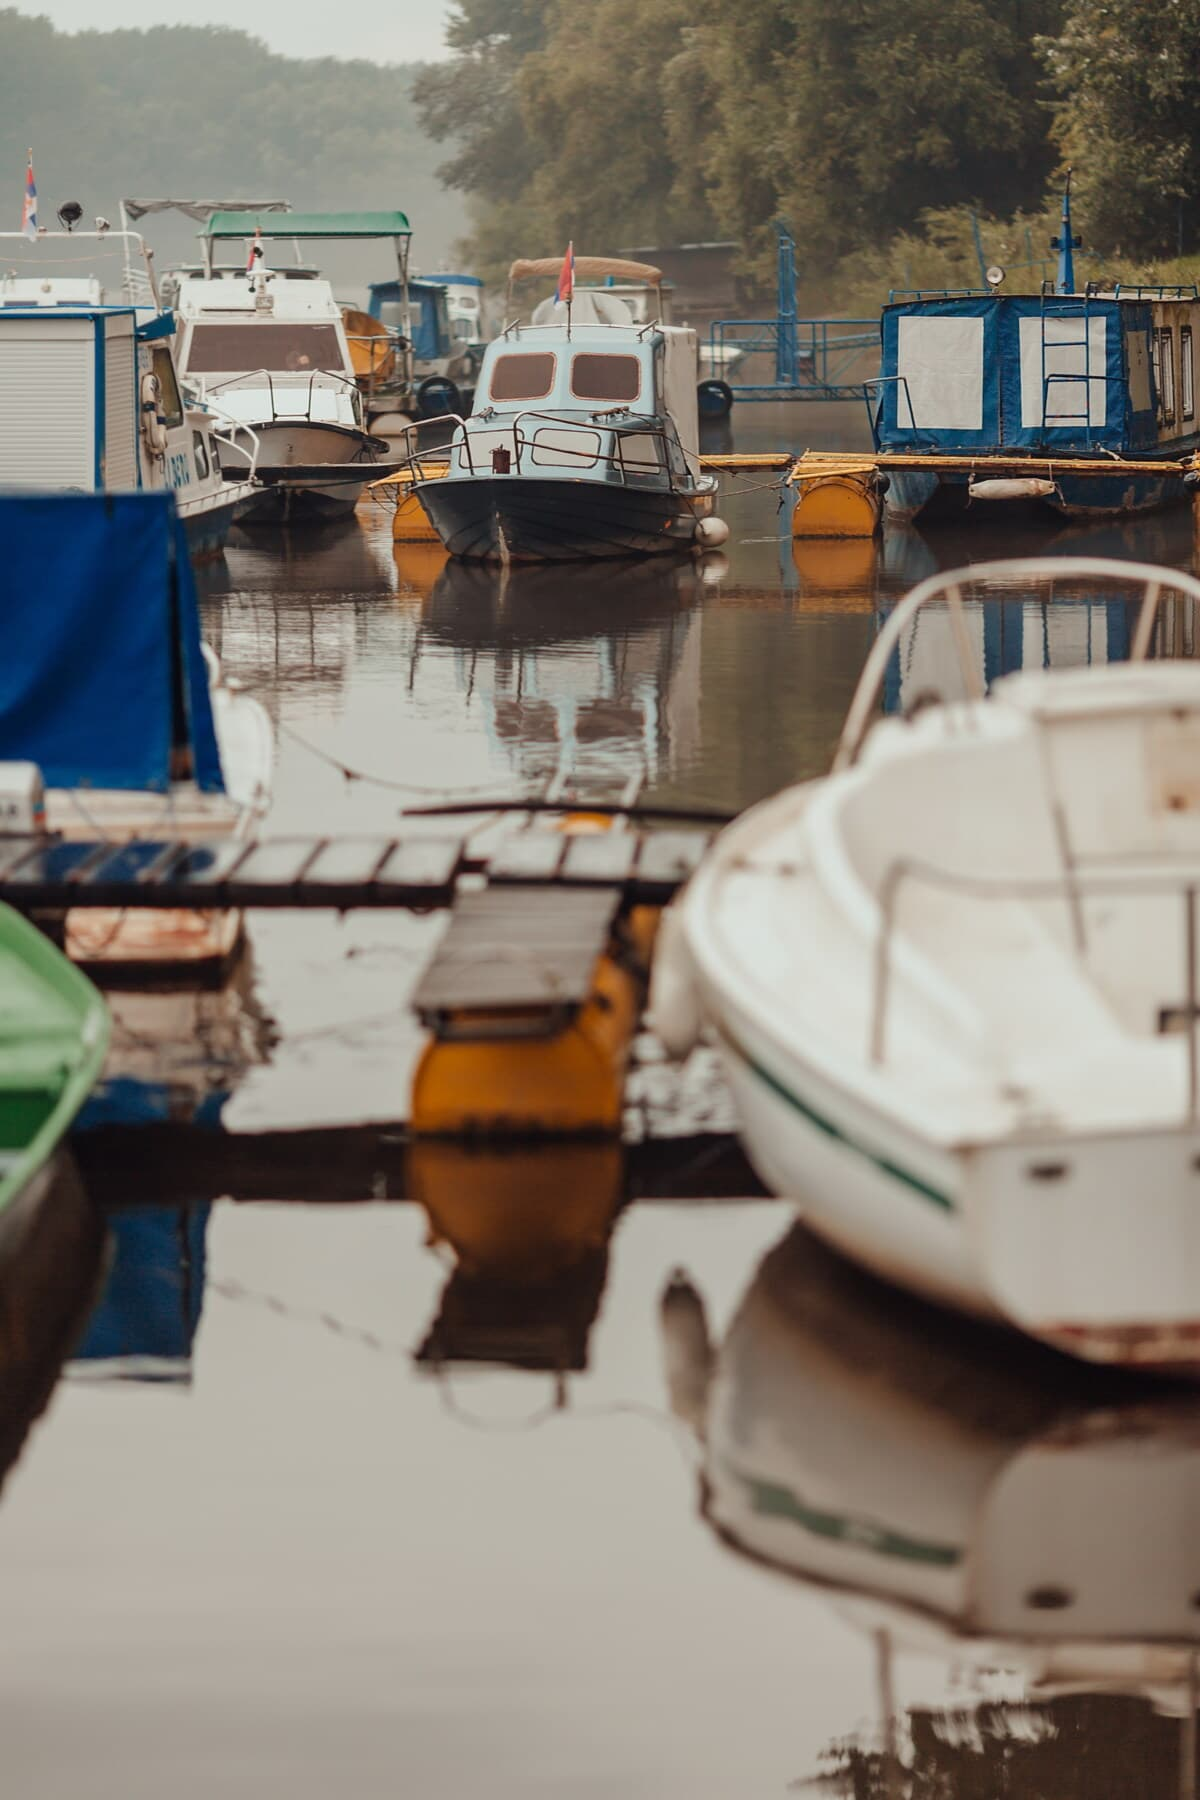 dock, canal, boats, marina, yacht club, harbour, boat, water, harbor, watercraft